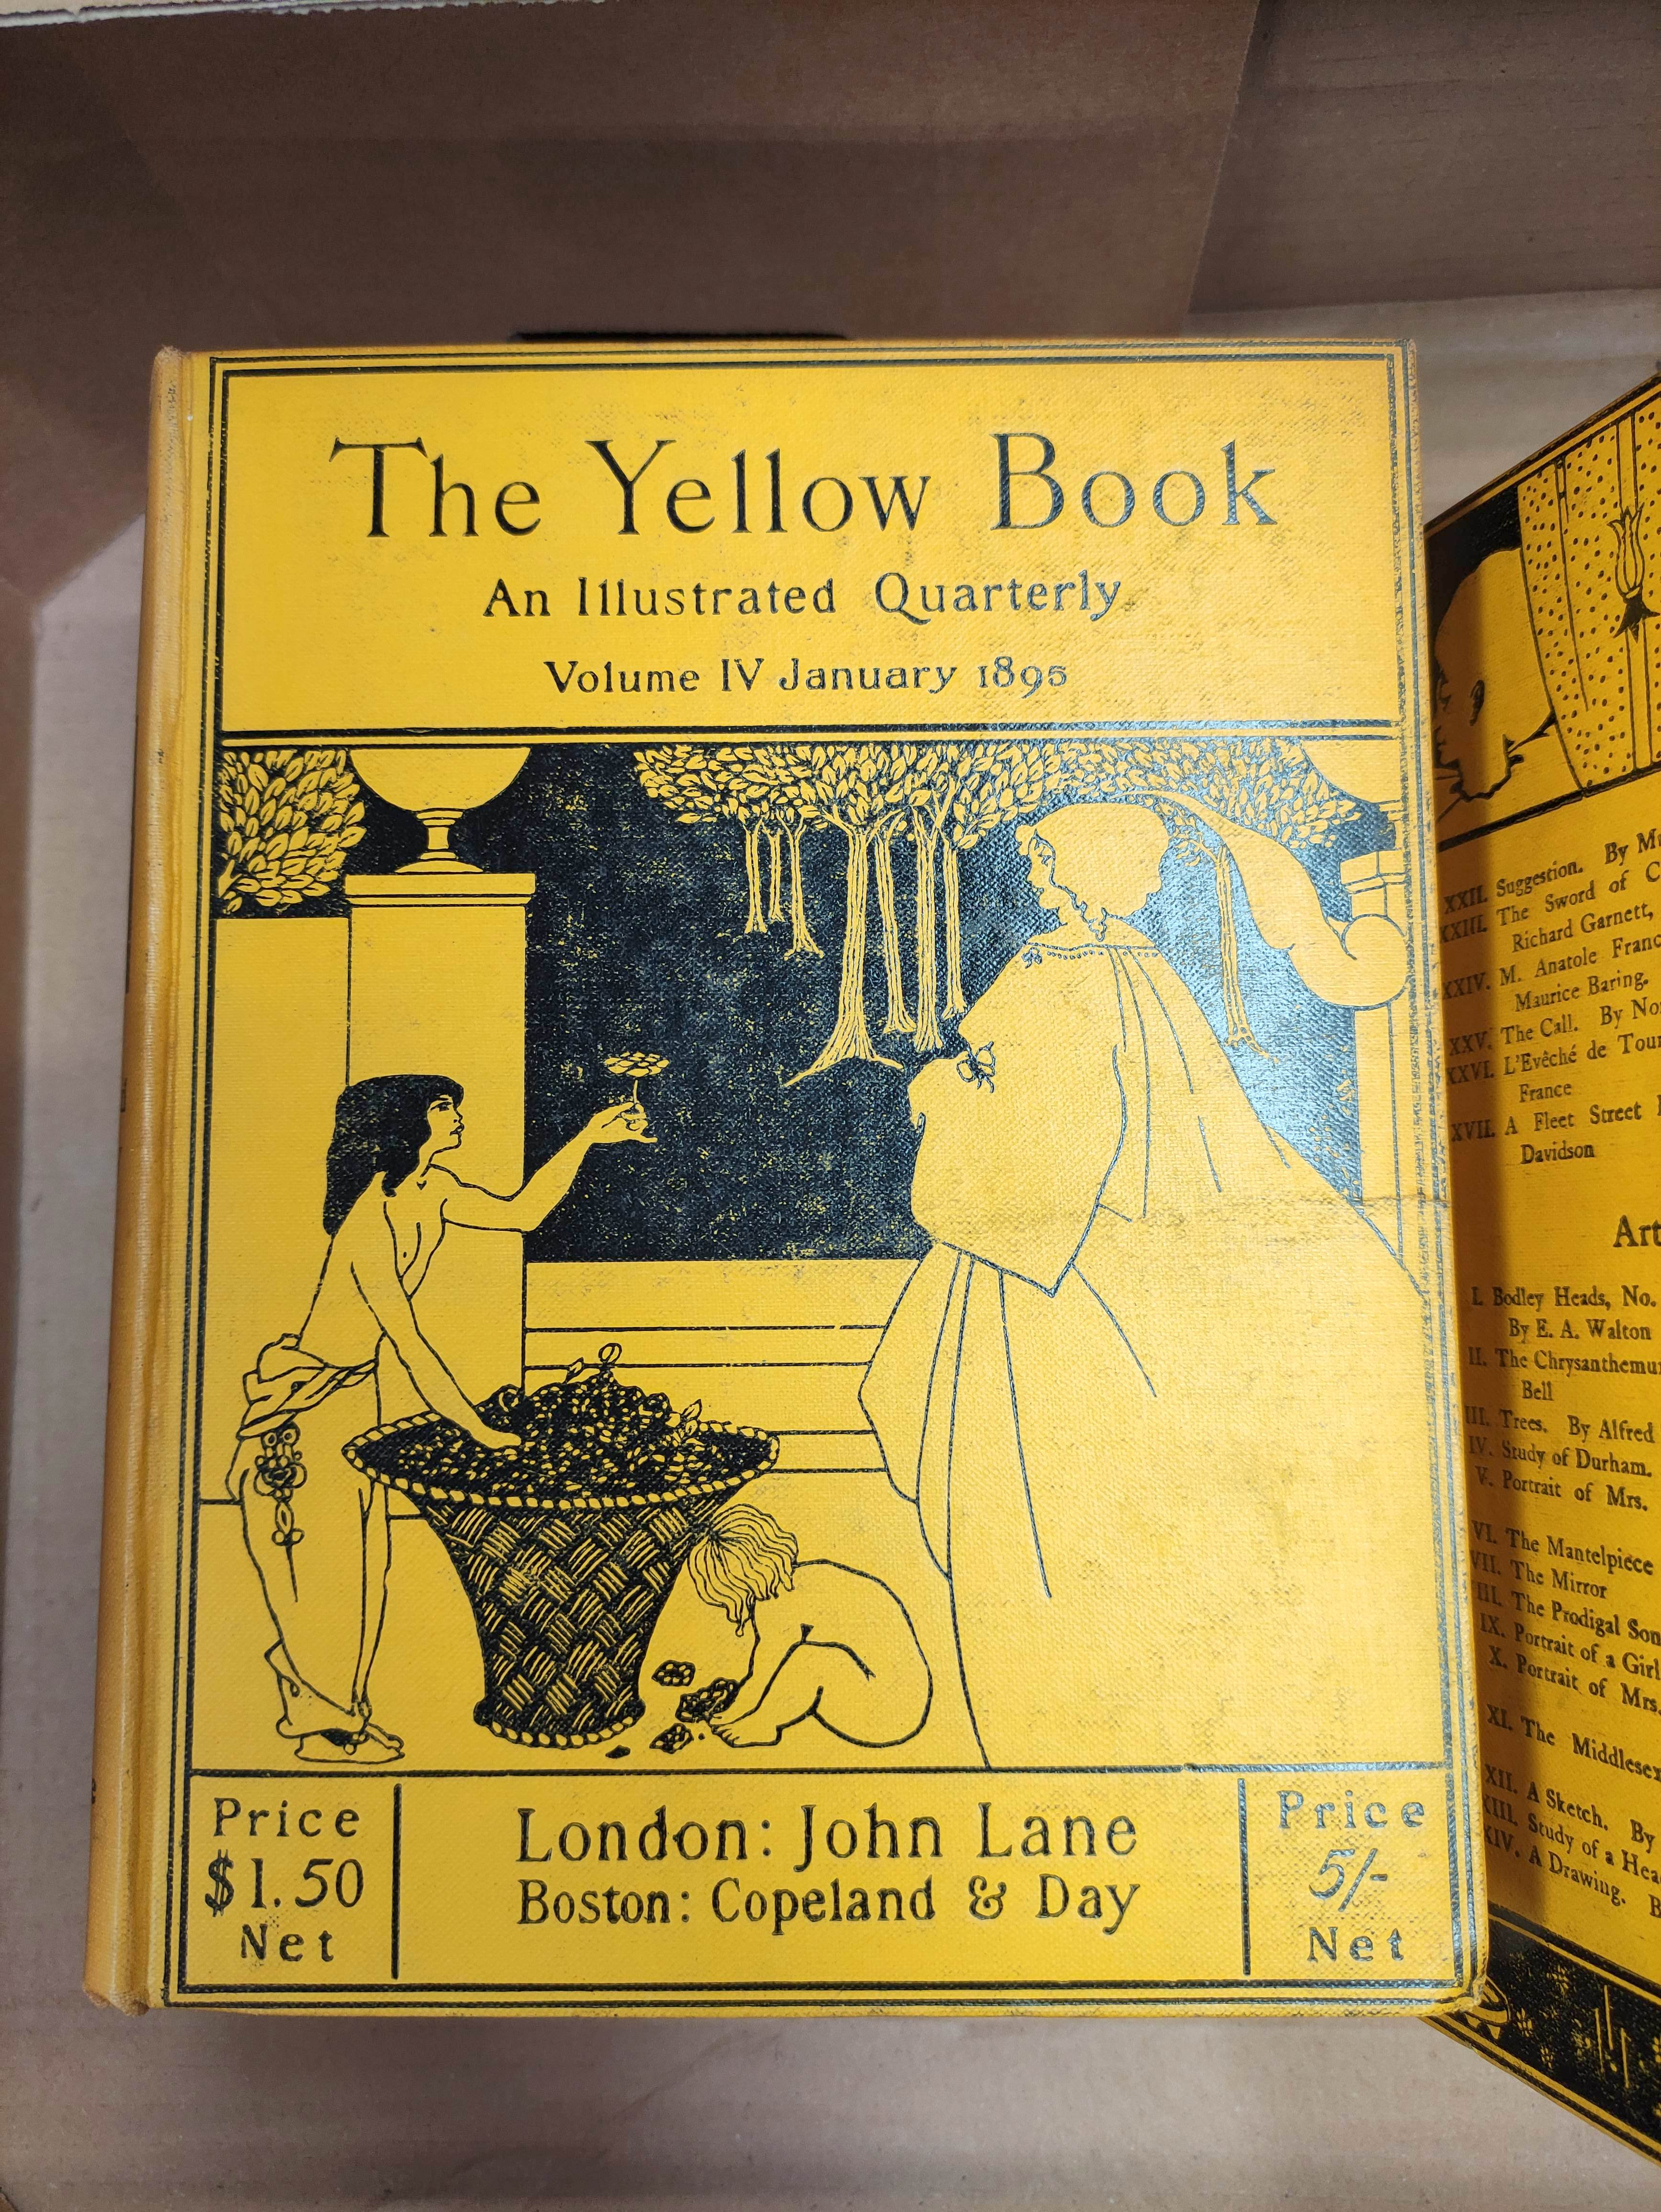 THE YELLOW BOOK.An Illustrated Quarterly. A set of 13 vols., many fine illus. Small quarto. - Image 2 of 45